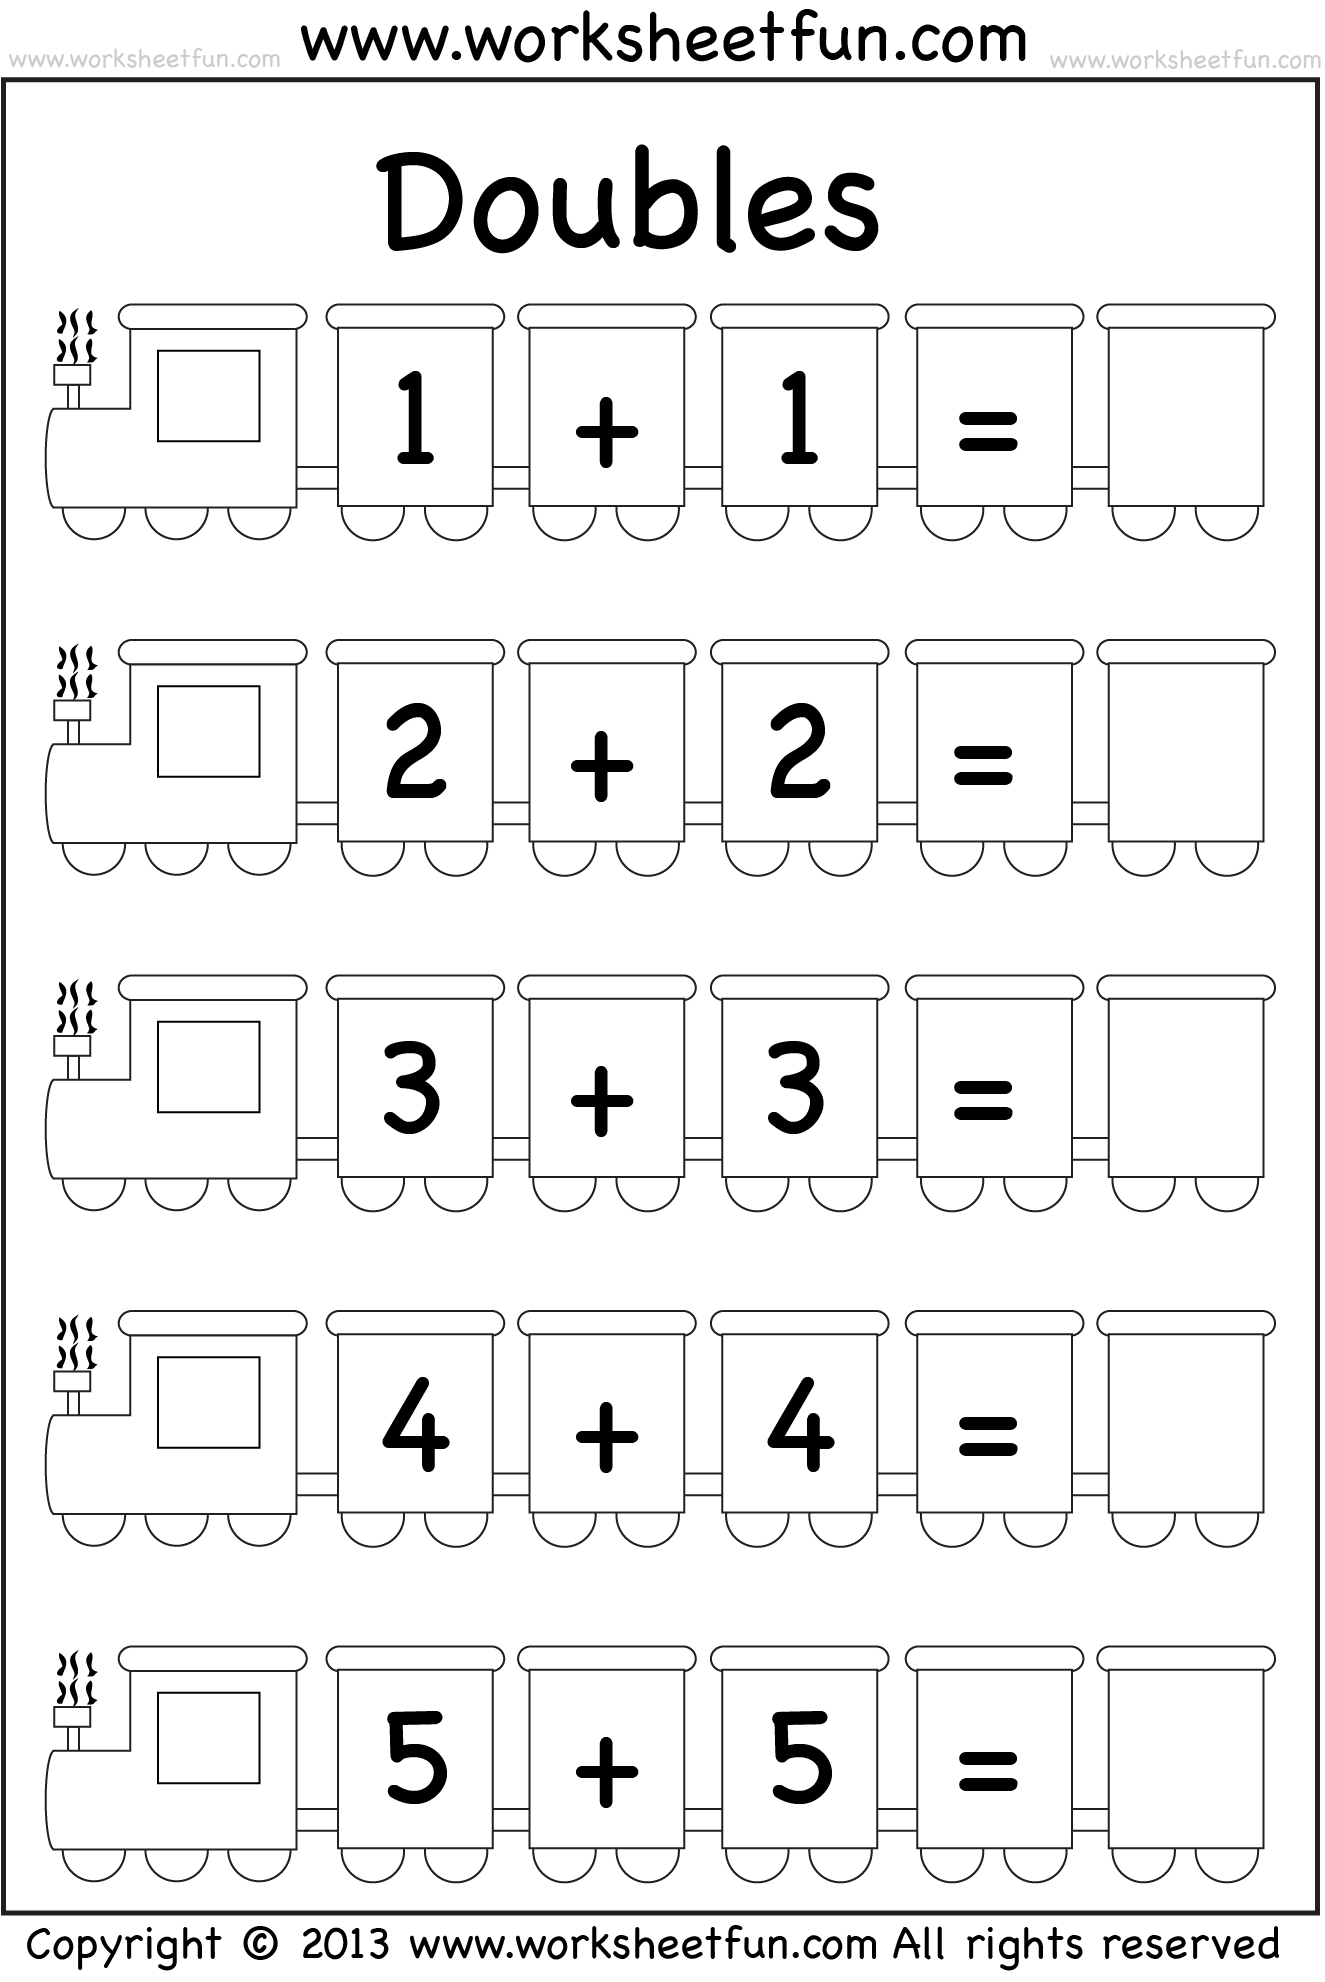 Double Fact Worksheets Free submited images.